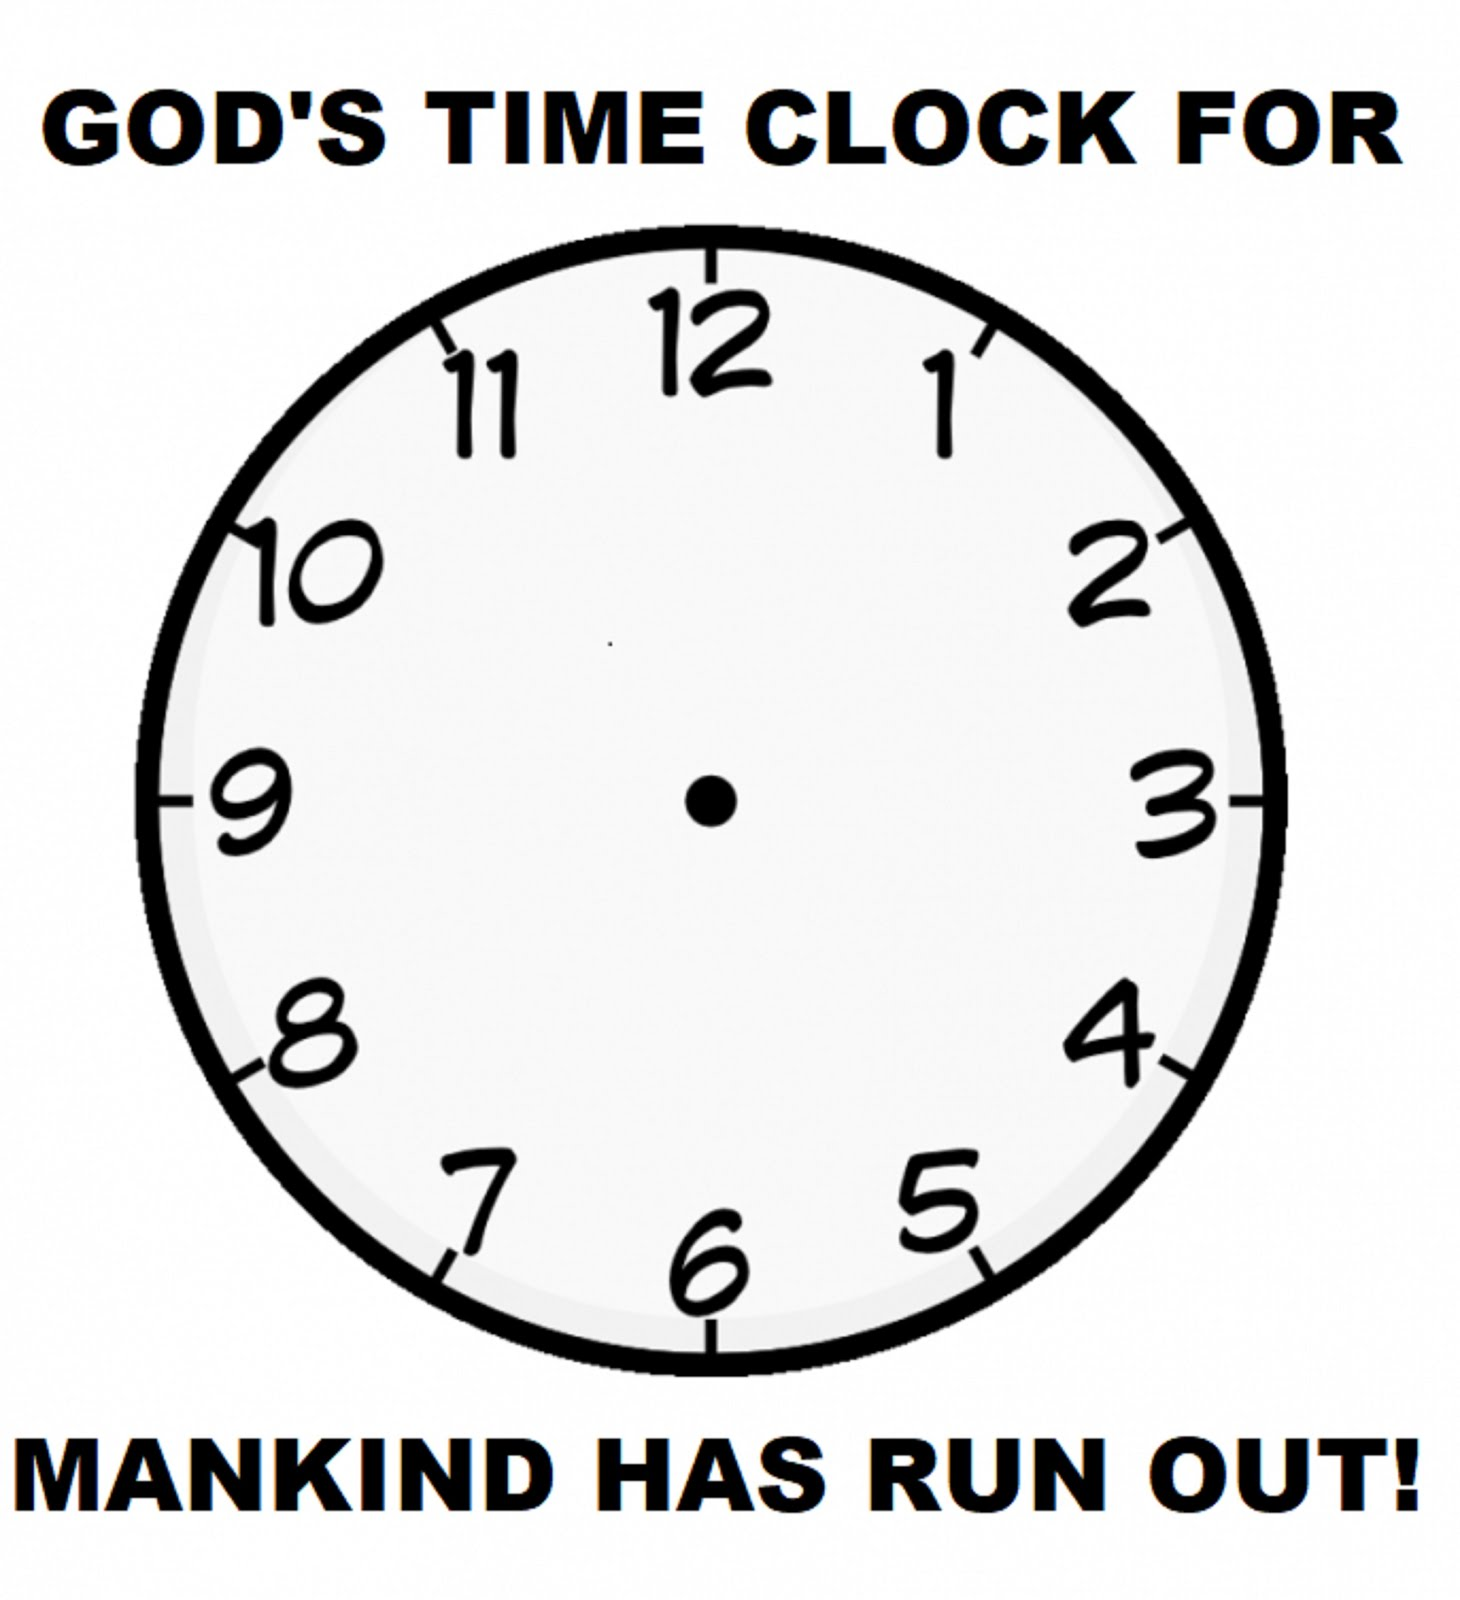 GOD'S TIME CLOCK FOR MANKIND HAS RUN OUT!